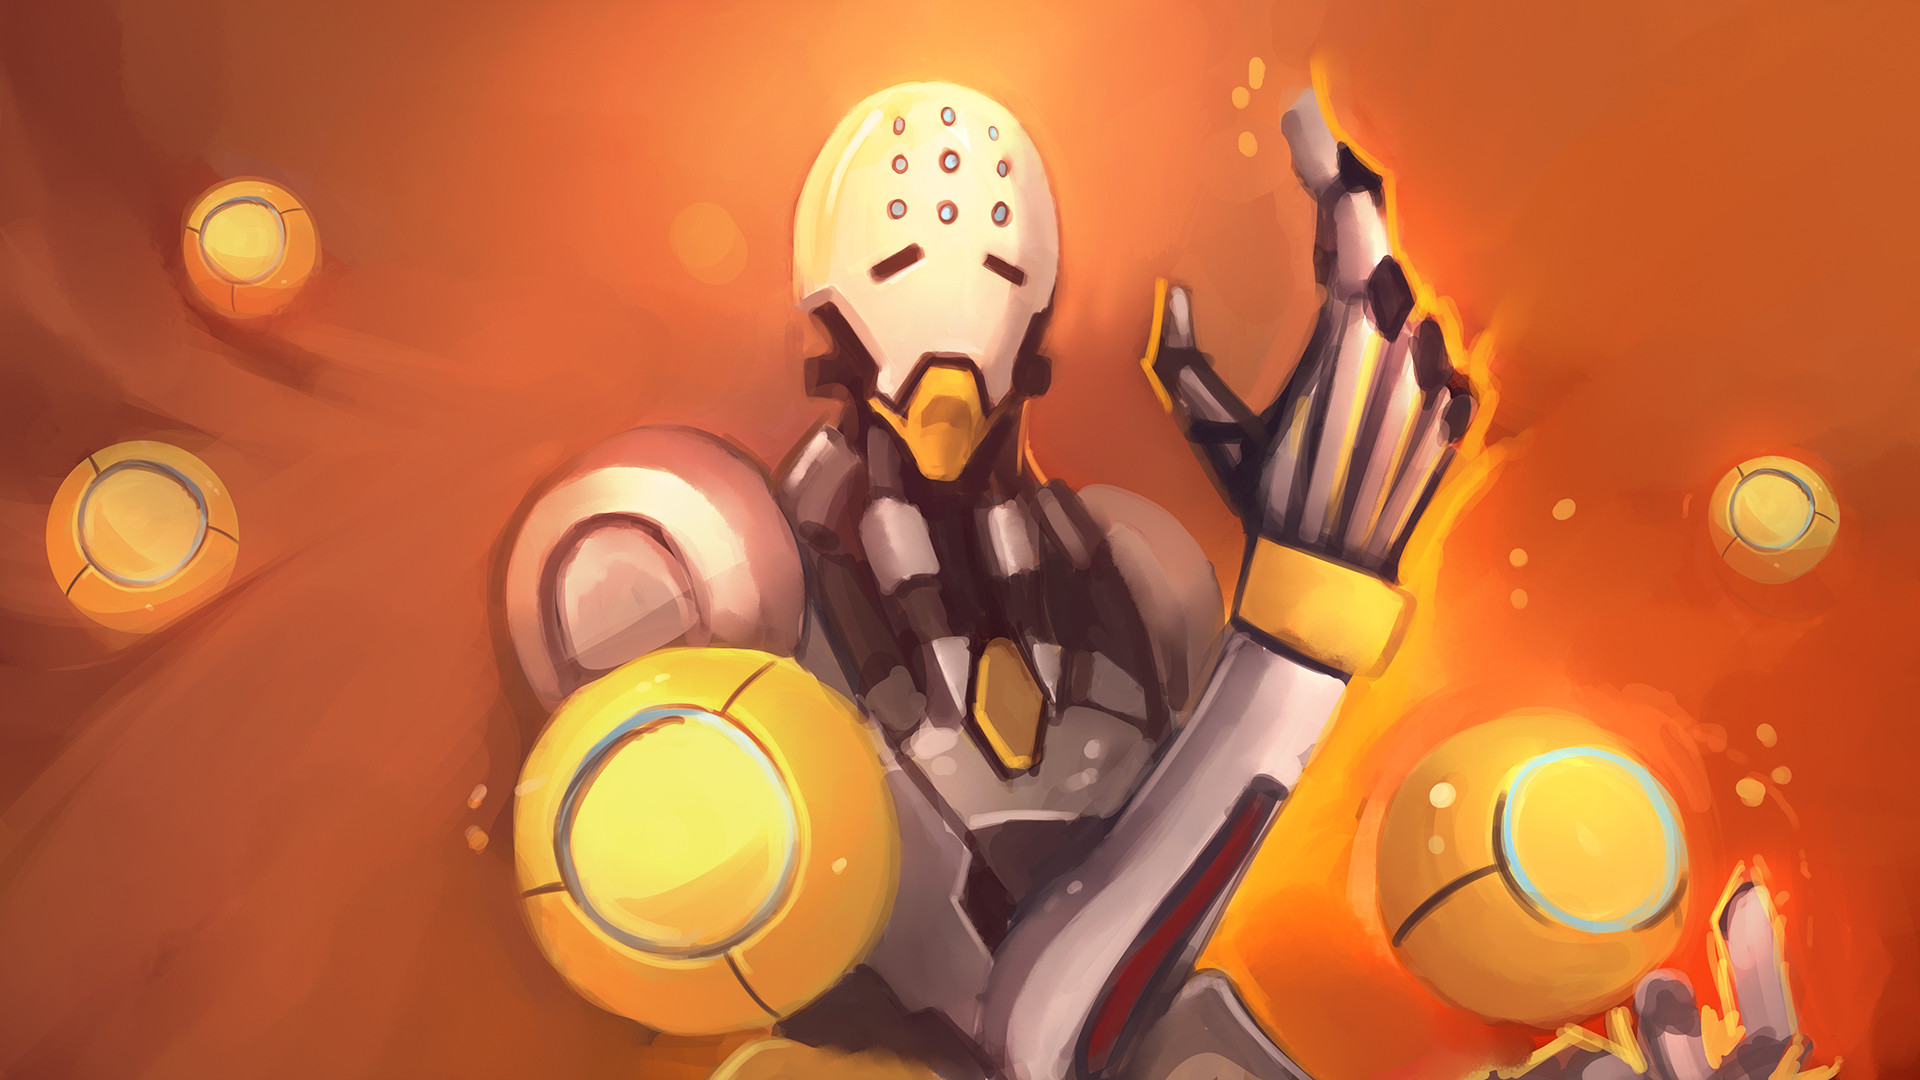 1920x1080 Video Game - Overwatch Zenyatta (Overwatch) Wallpaper